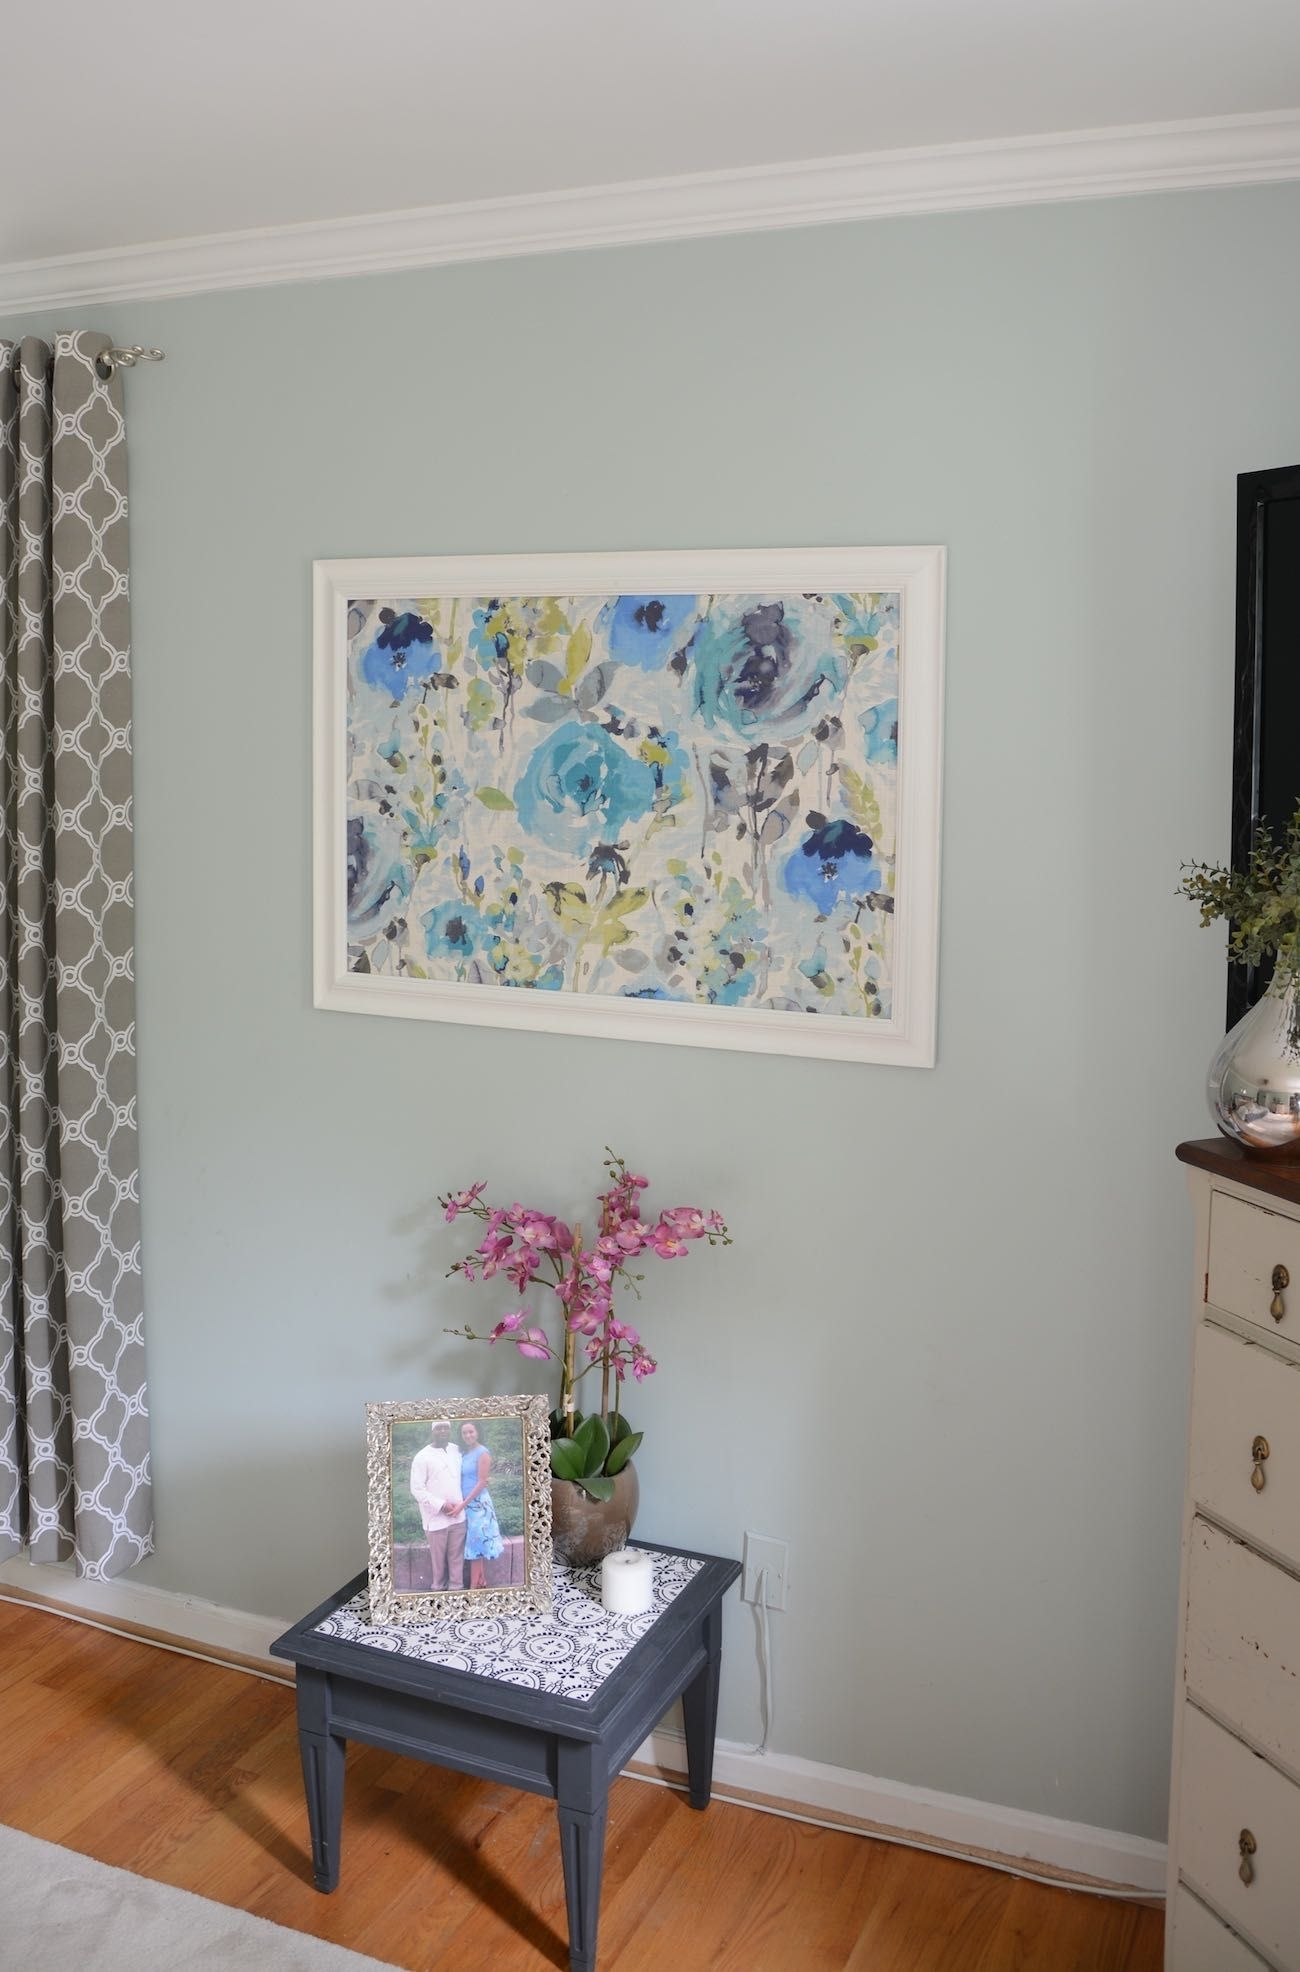 How To Frame Fabric For Wall Art With A Picture Frame | Inexpensive inside Inexpensive Wall Art (Image 10 of 20)